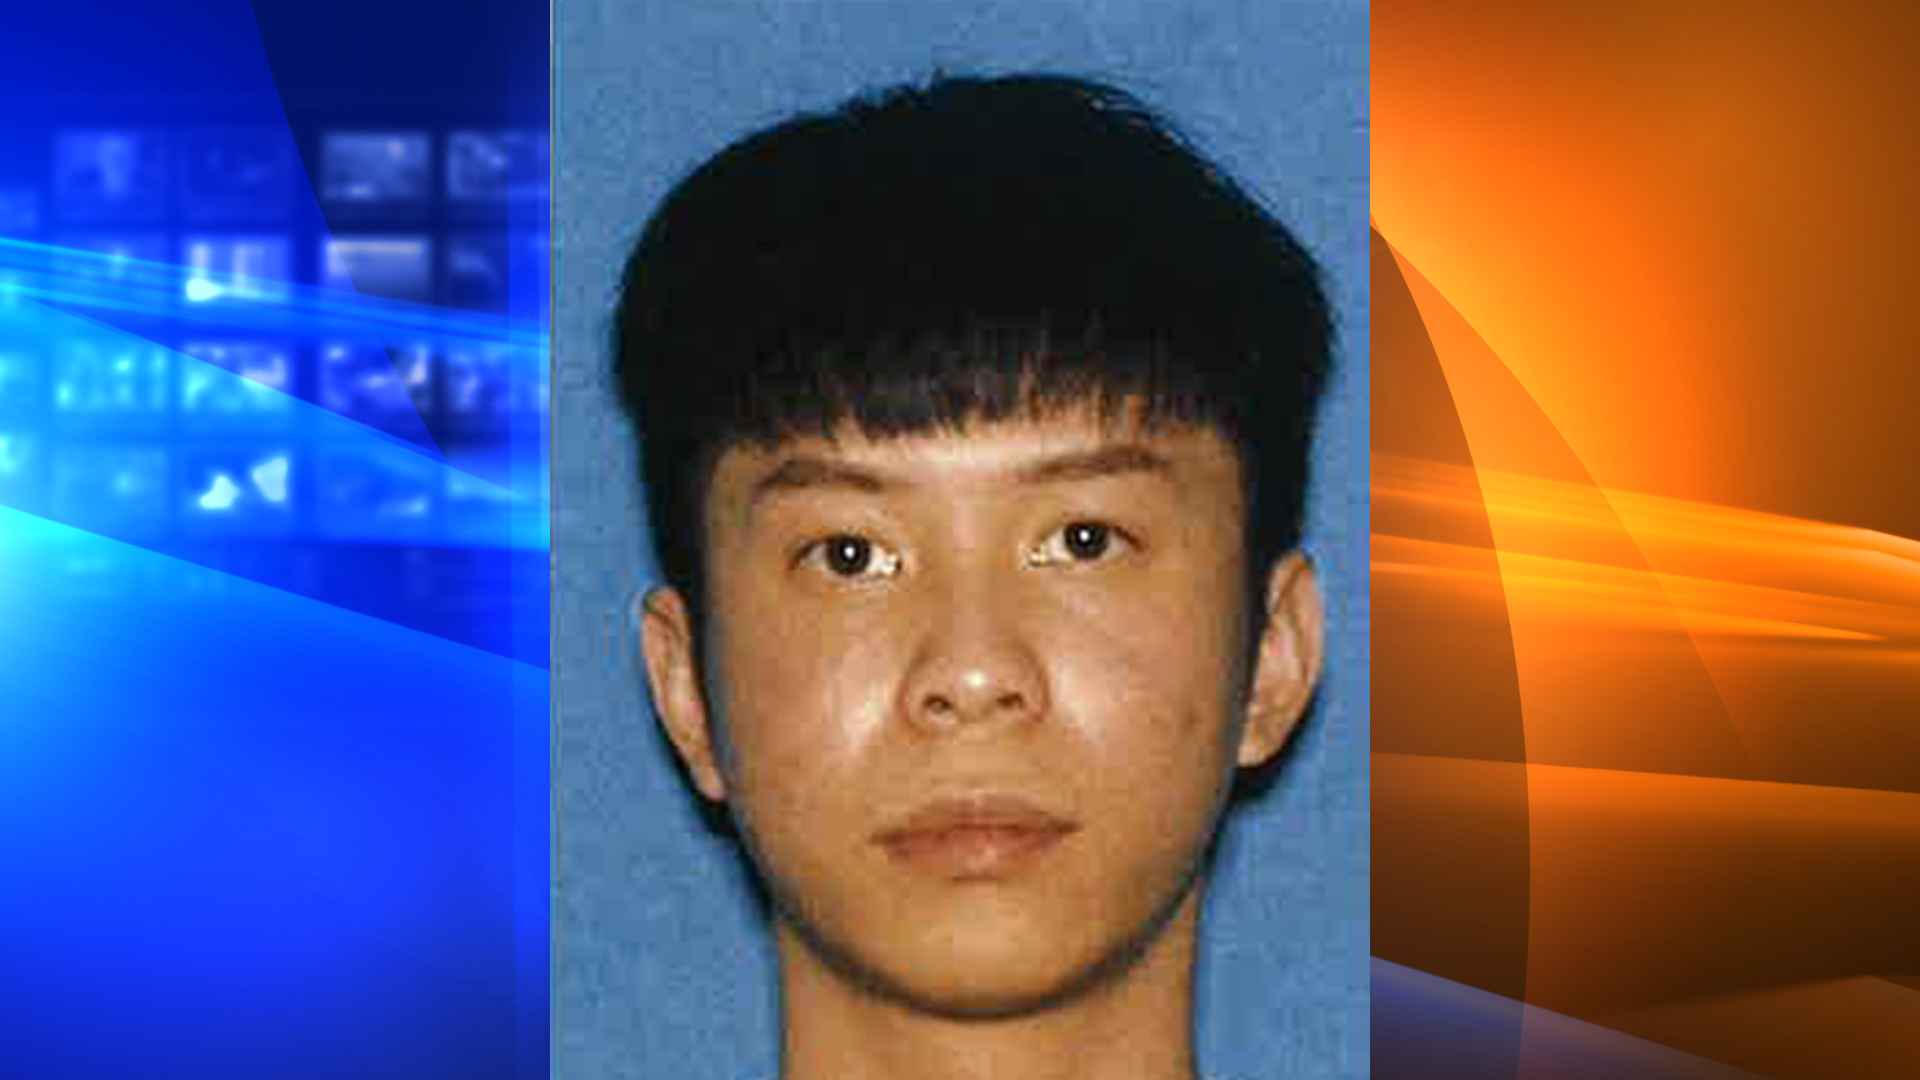 Yuanfeng Kuang is shown in a photo released by the San Gabriel Police Department on March 31, 2021.